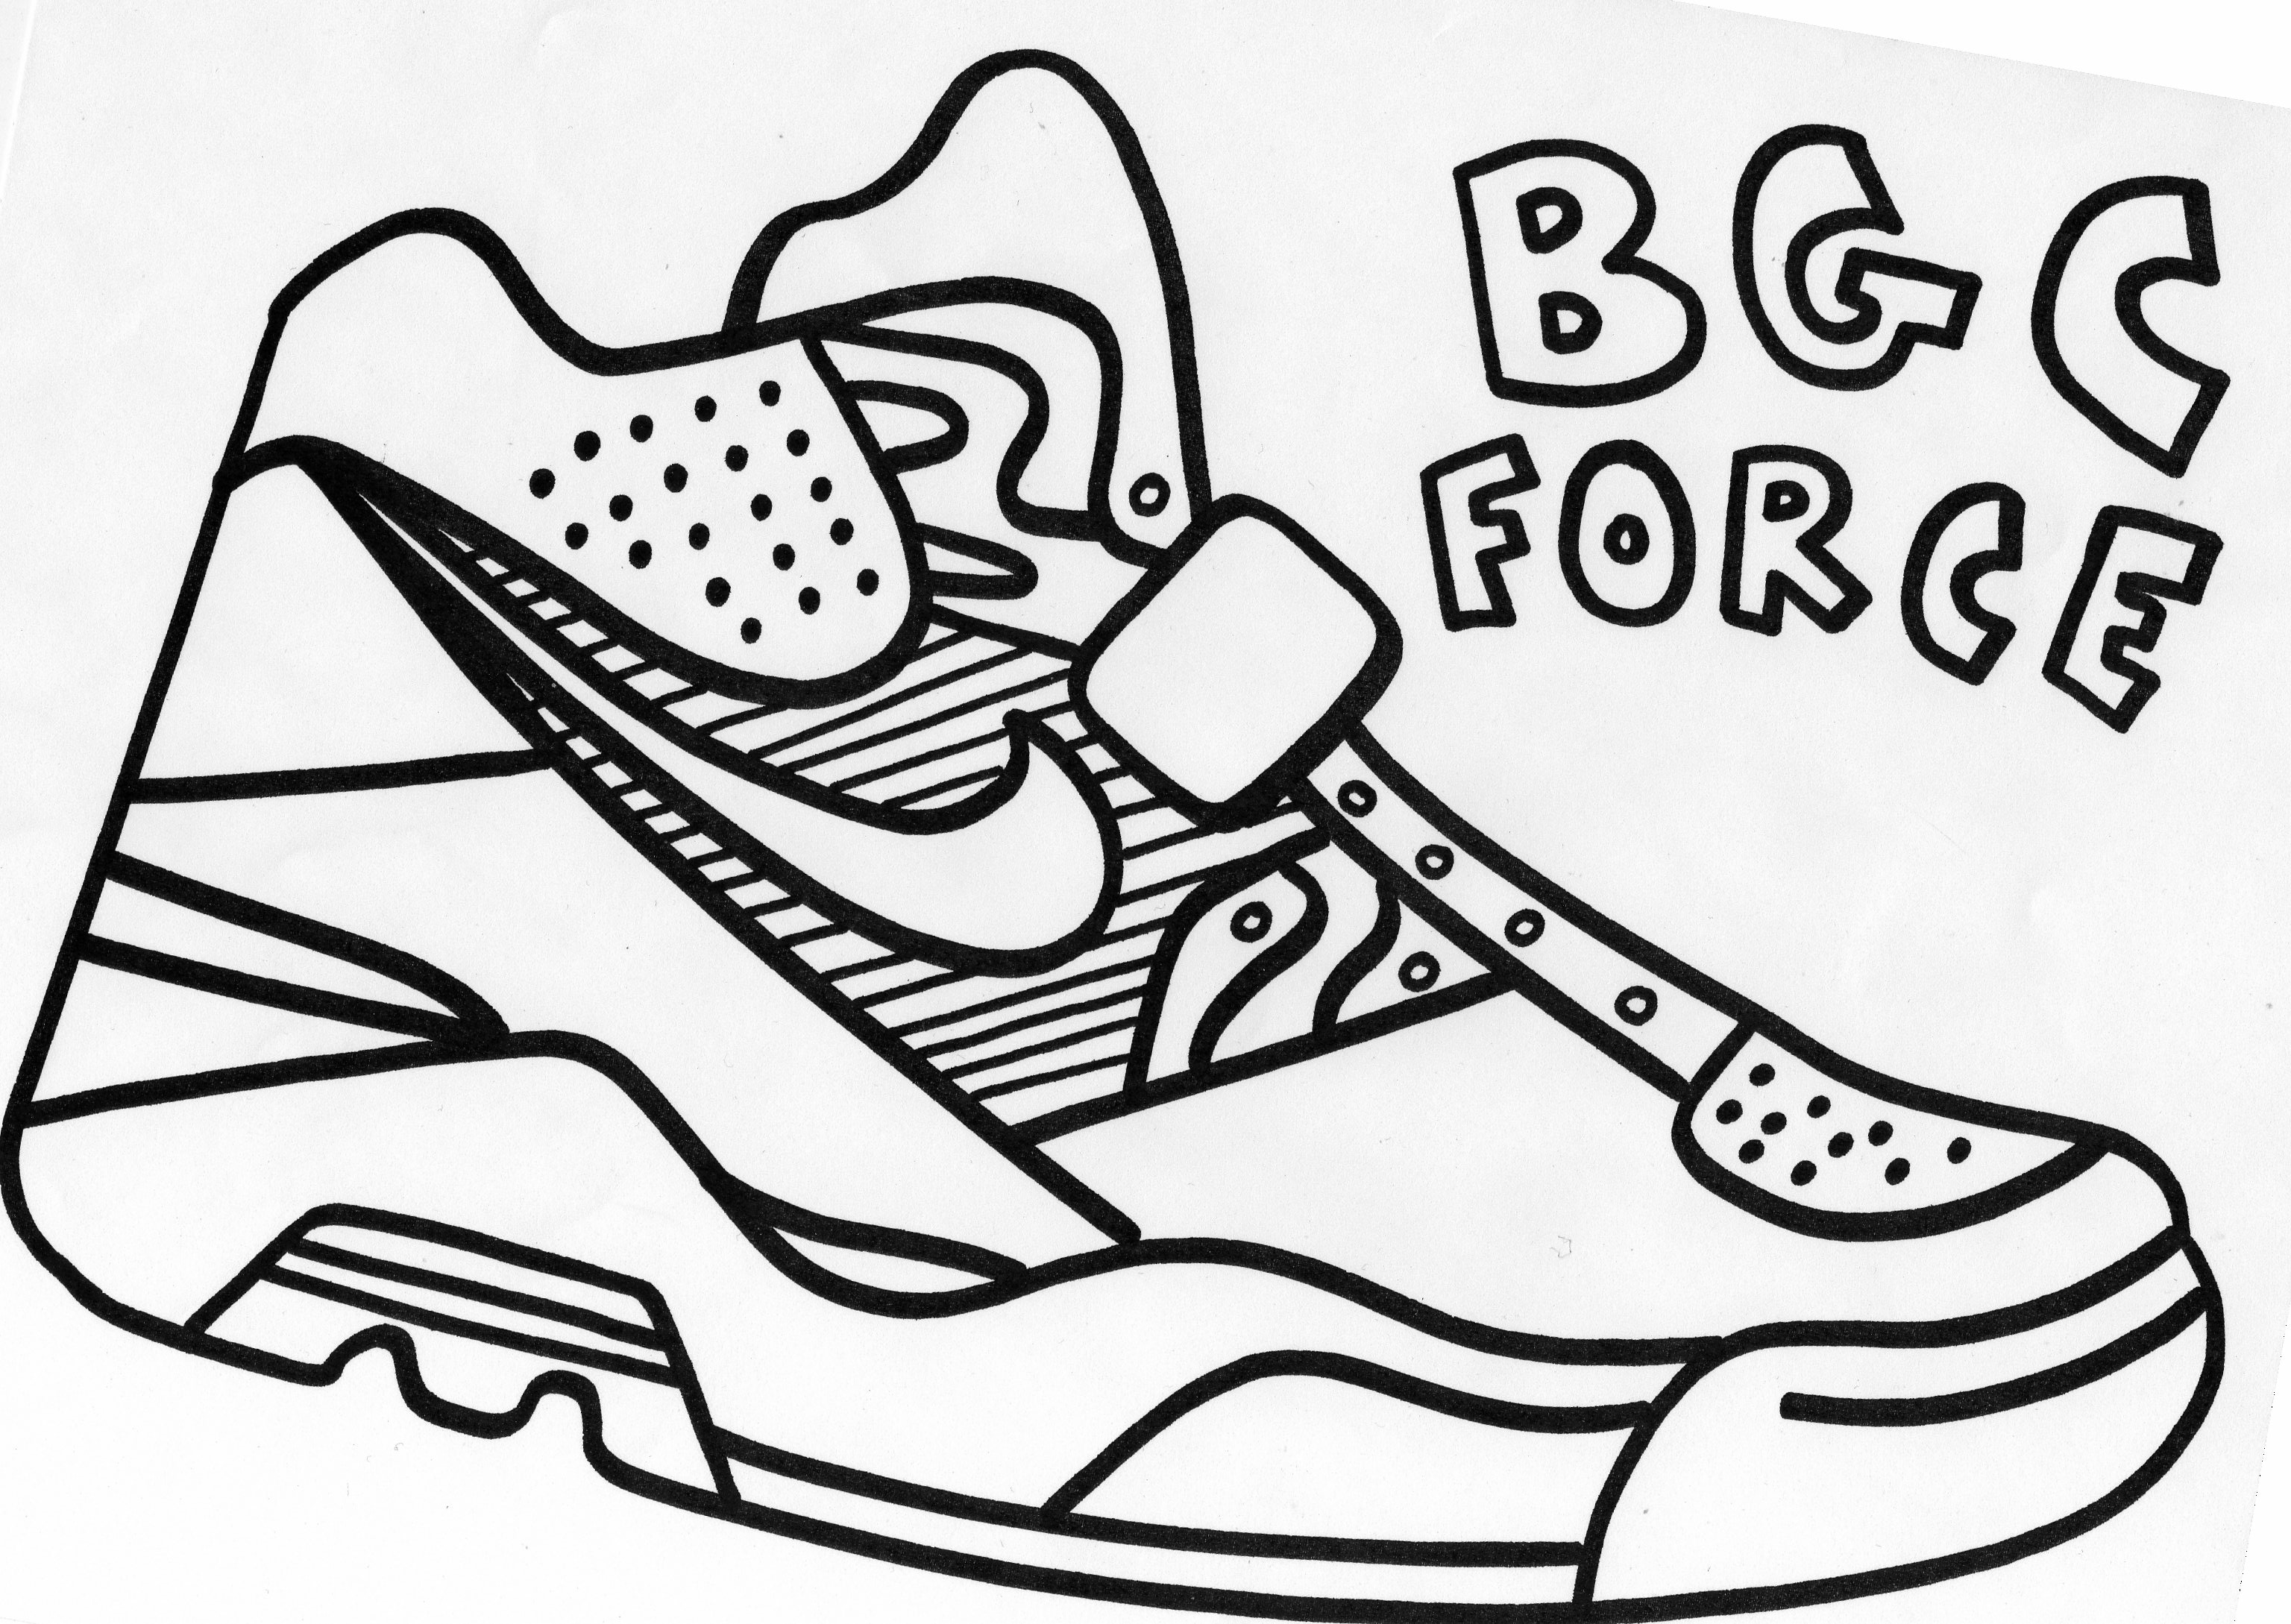 images of shoes to color basketball shoe coloring pages download and print for free images color of to shoes